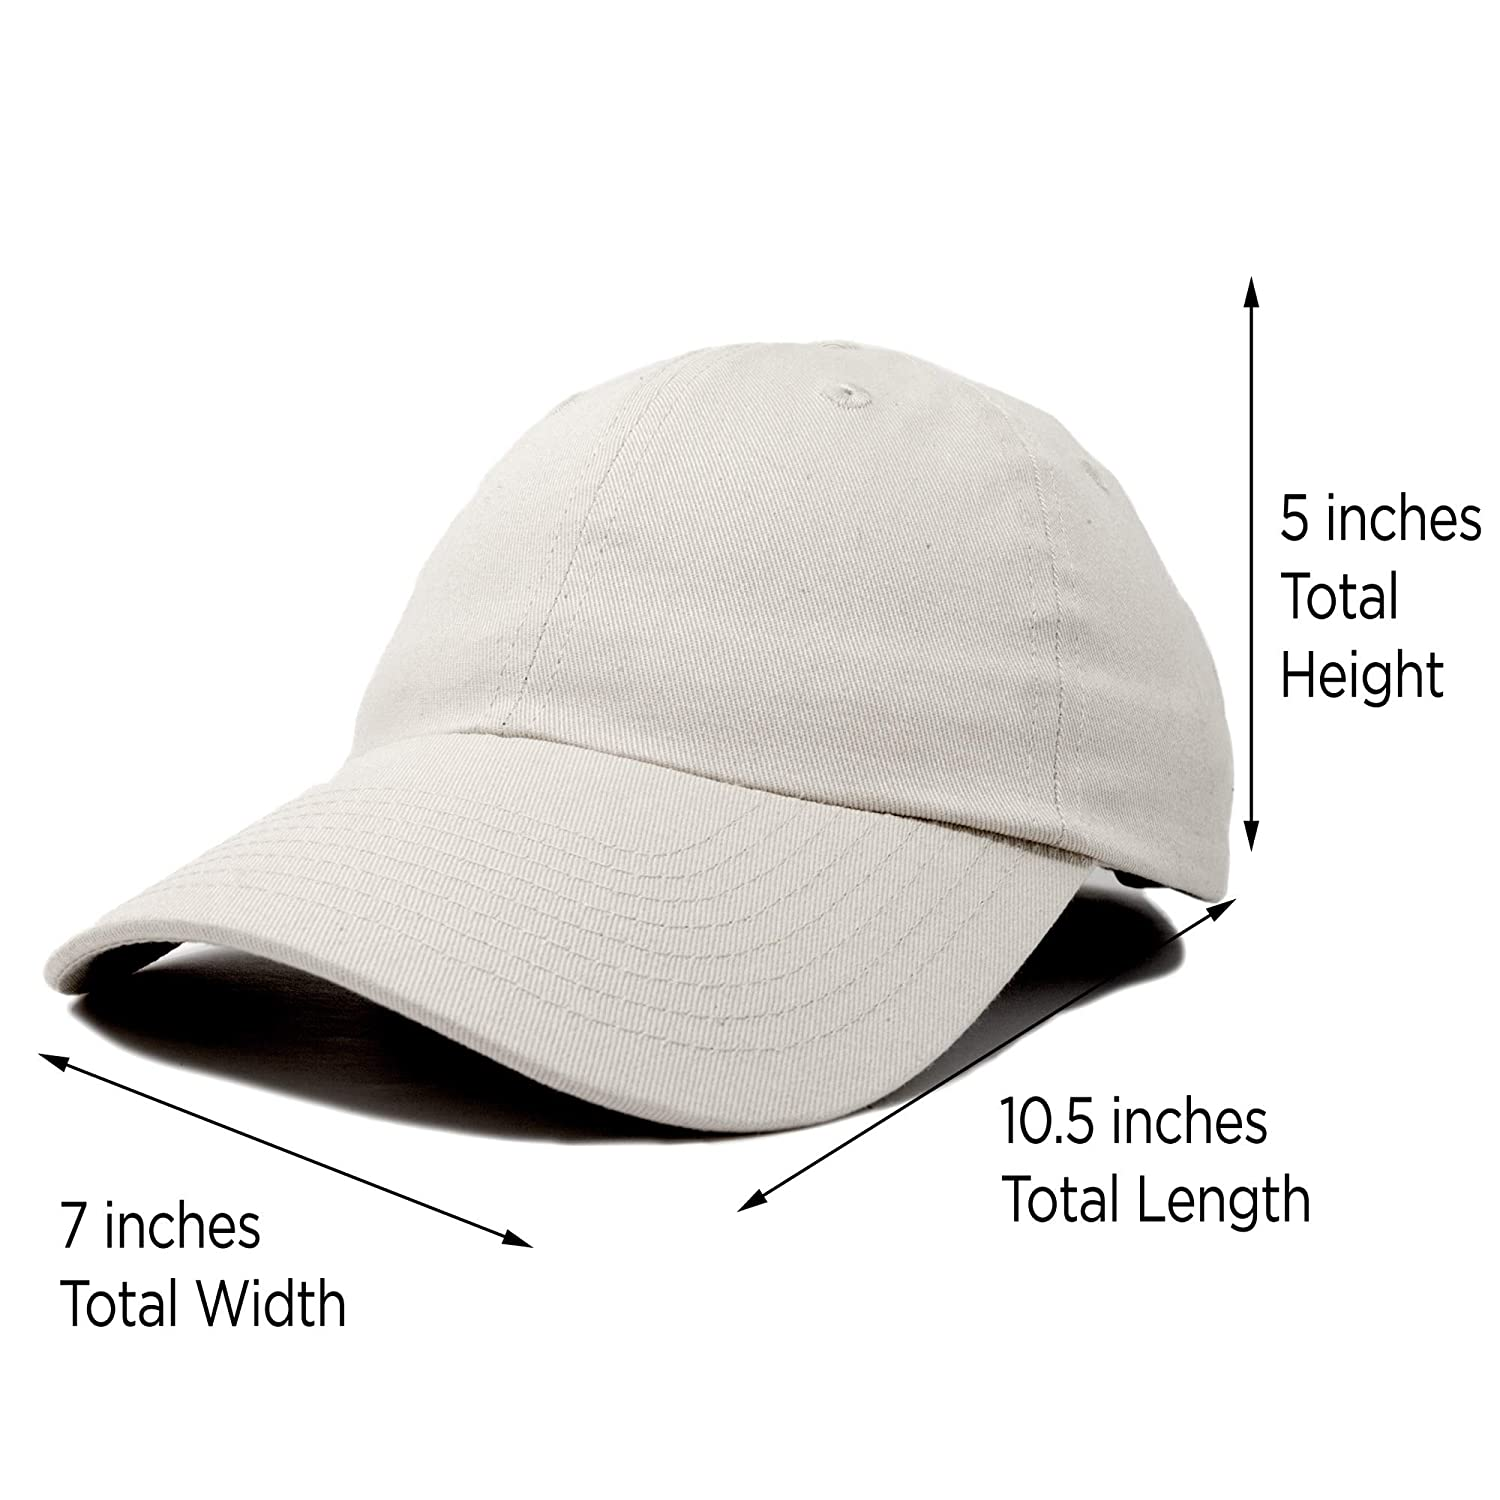 0679d5a2d16 Dalix Unisex Unstructured Cotton Cap Adjustable Plain Hat